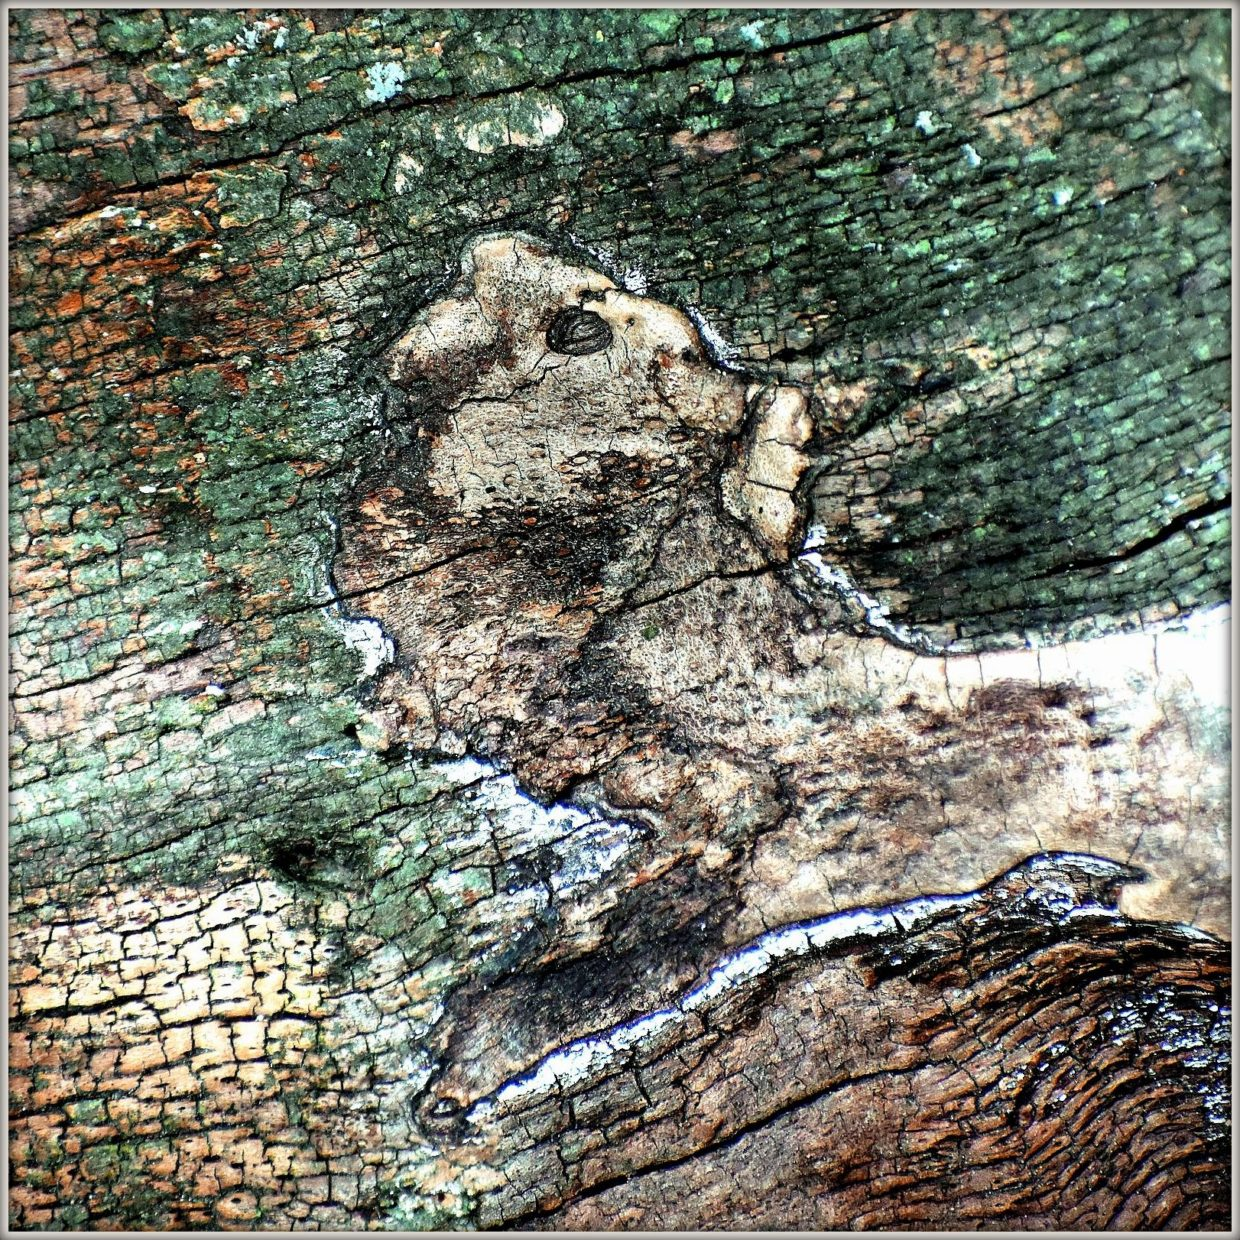 tree bark with pareidolia showing a face. Colors green, brown and beige.